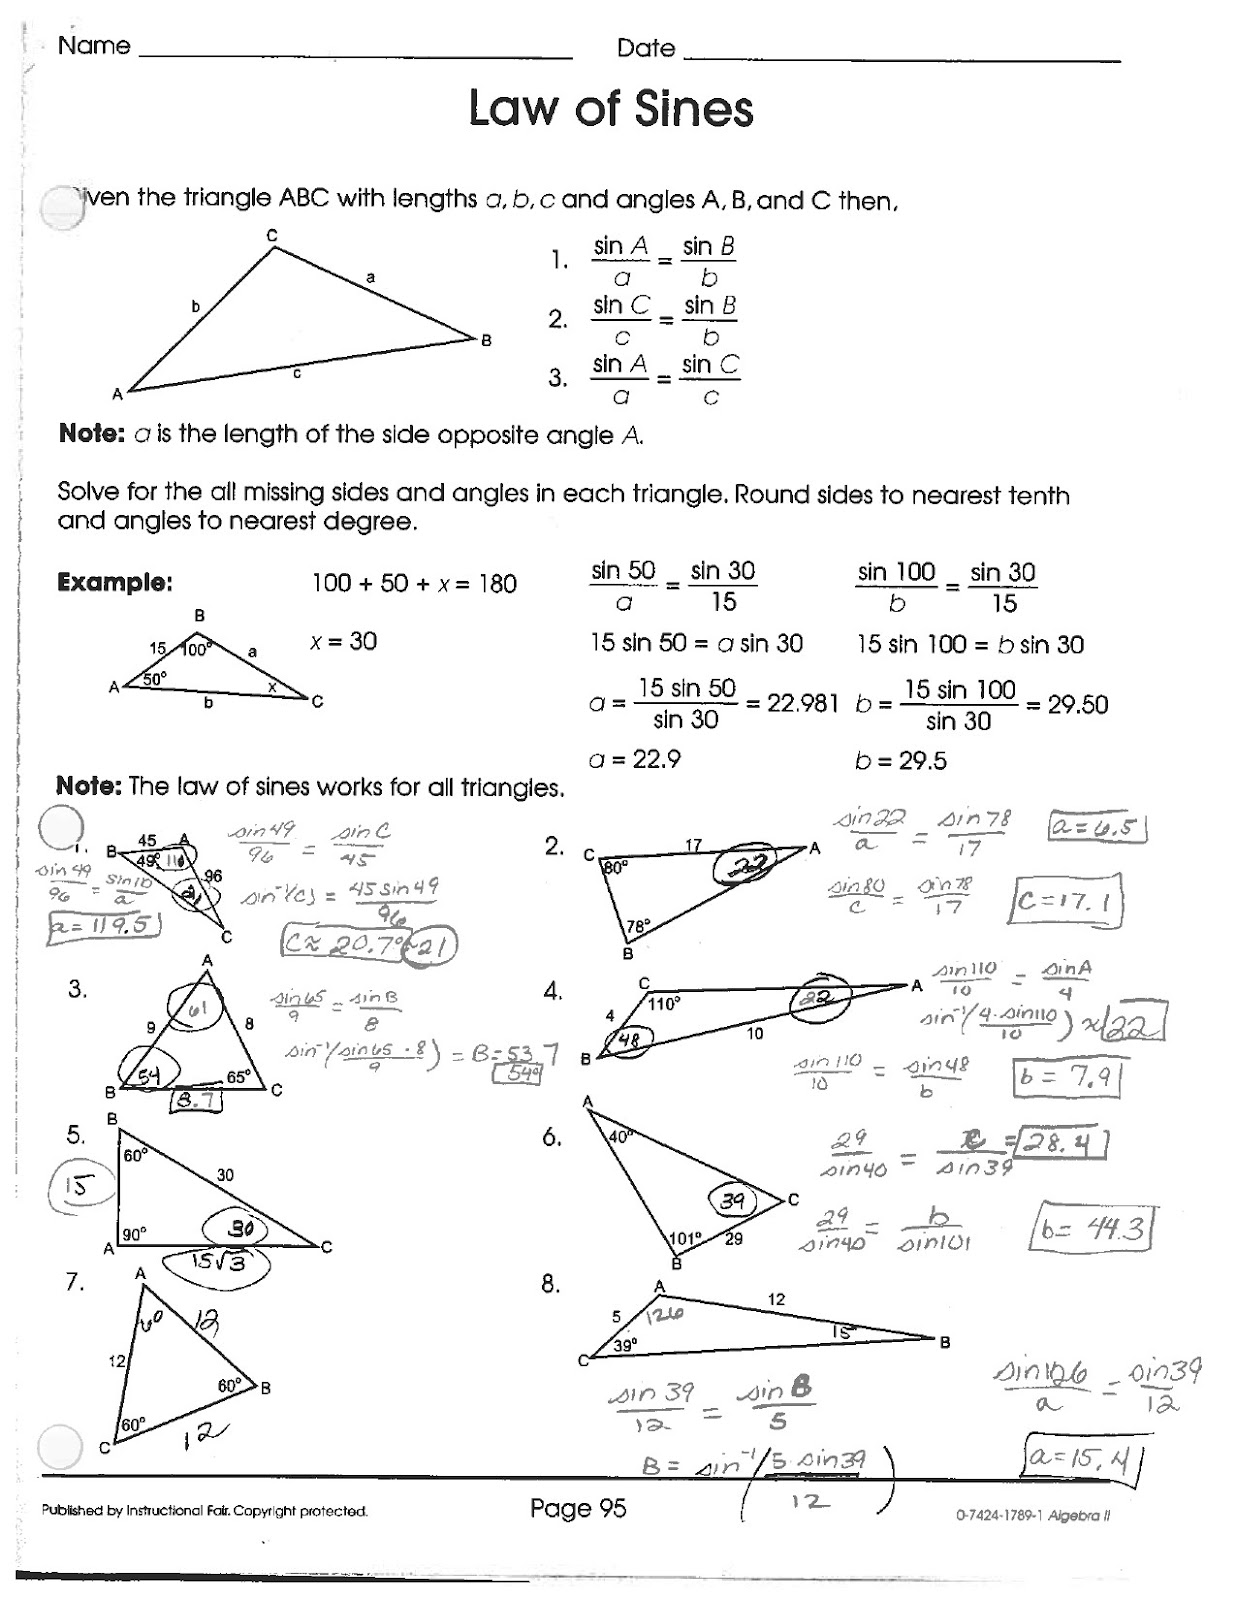 Worksheet Law Of Cosines Worksheet math classes spring 2012 pre calc laws of sines and cosines worksheet